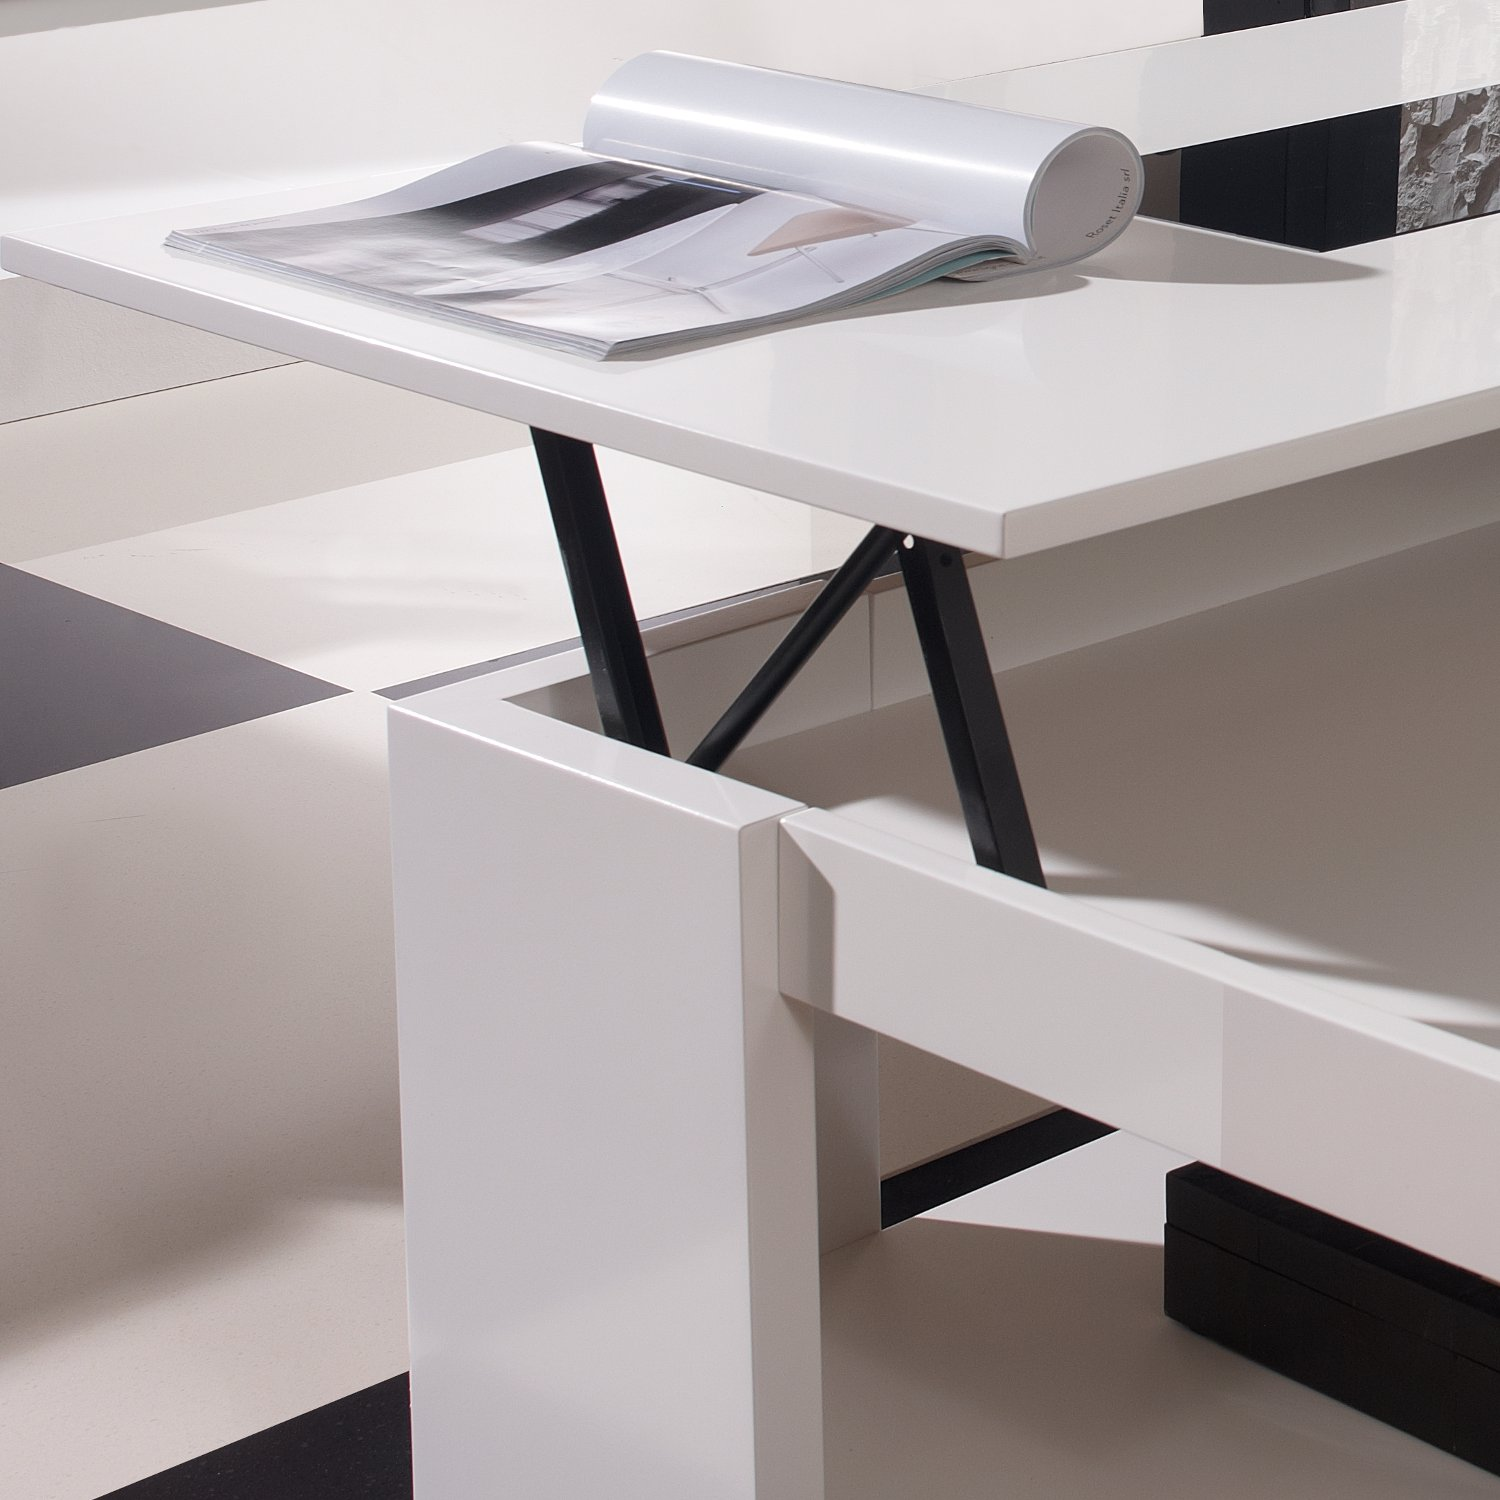 La table basse relevable r volutionne le salon d co et for Table de salon escamotable